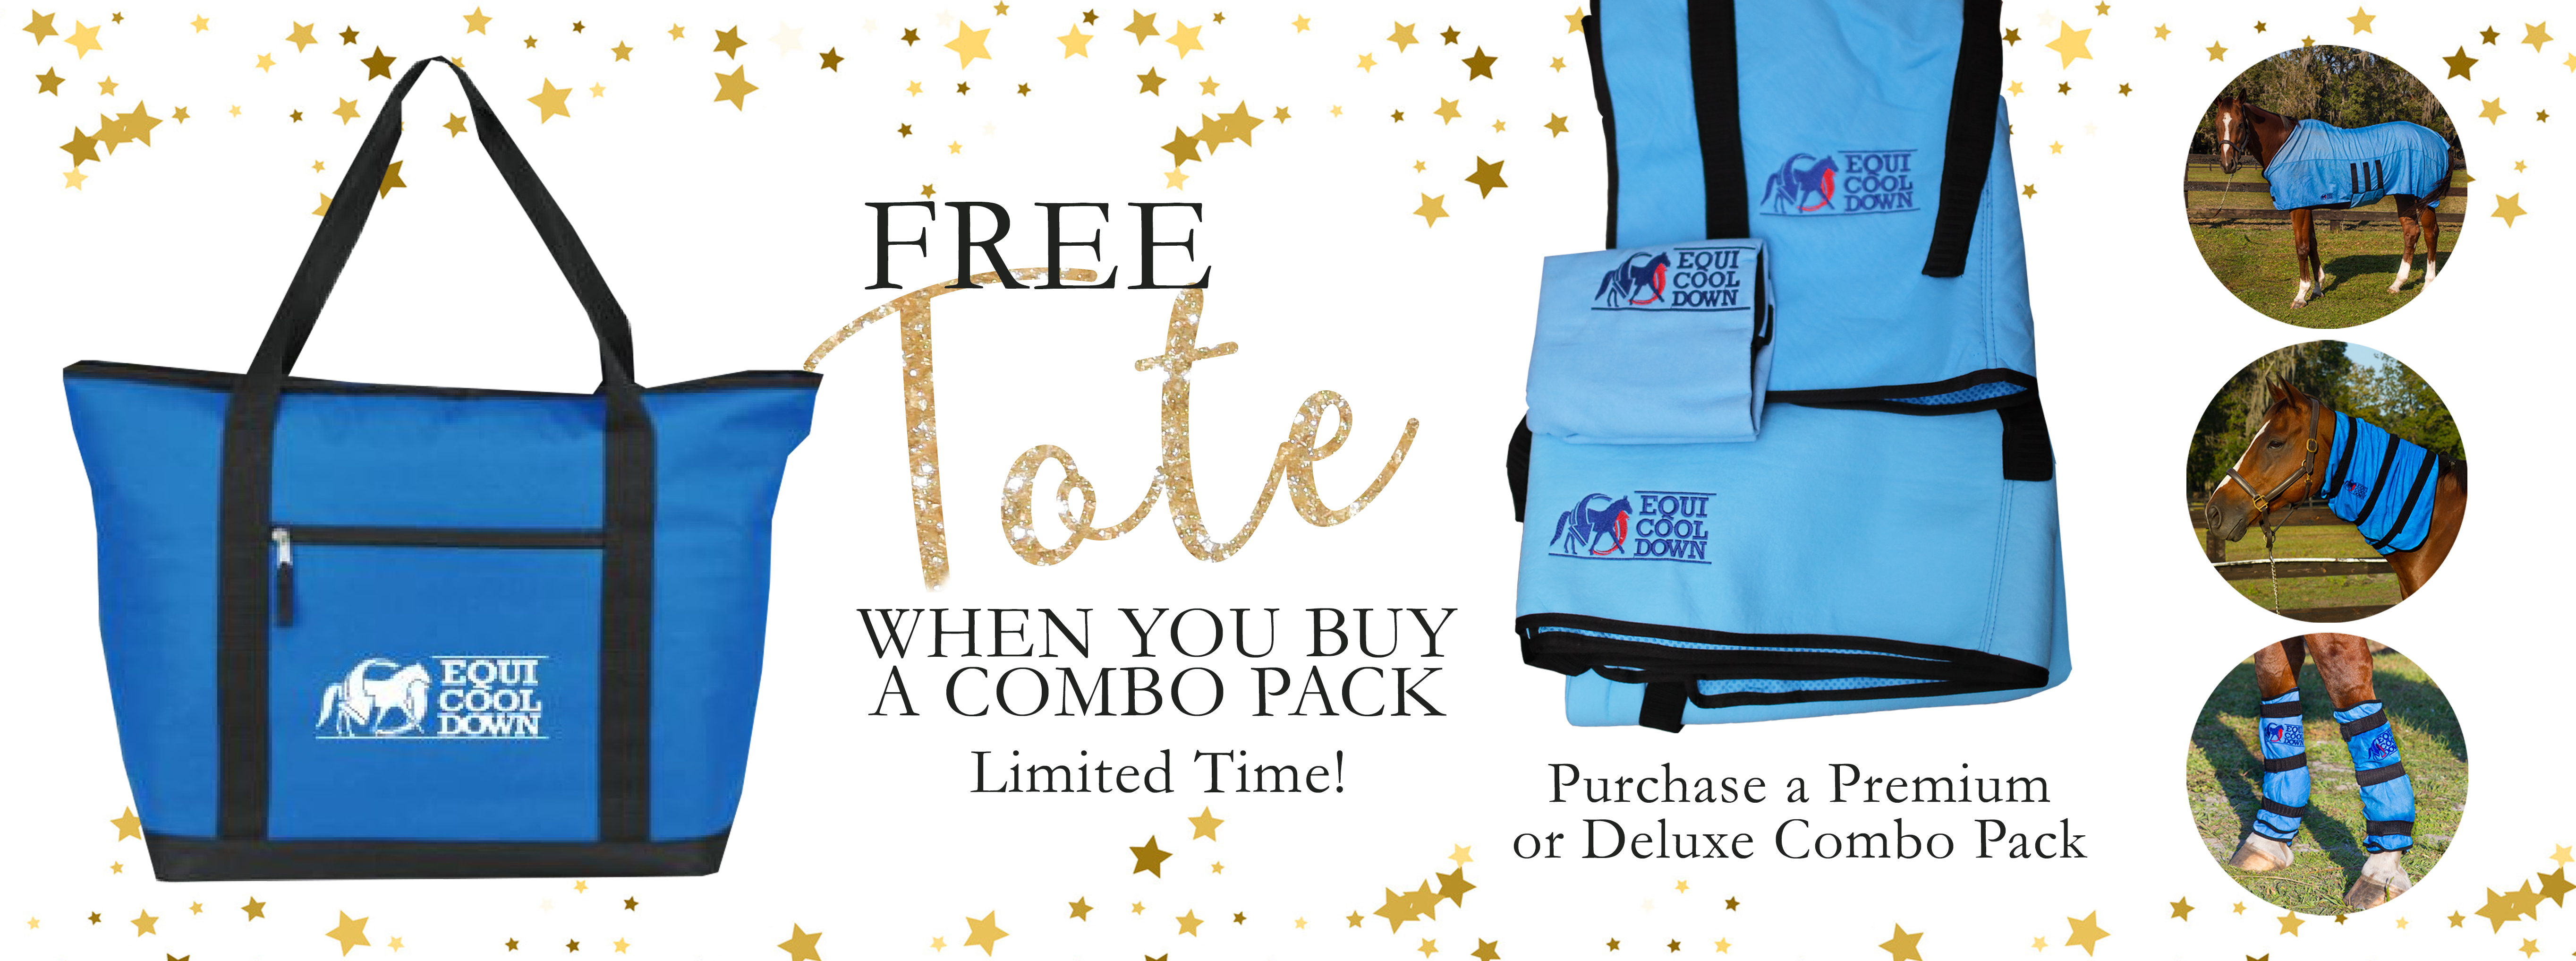 Free-Tote-Banner